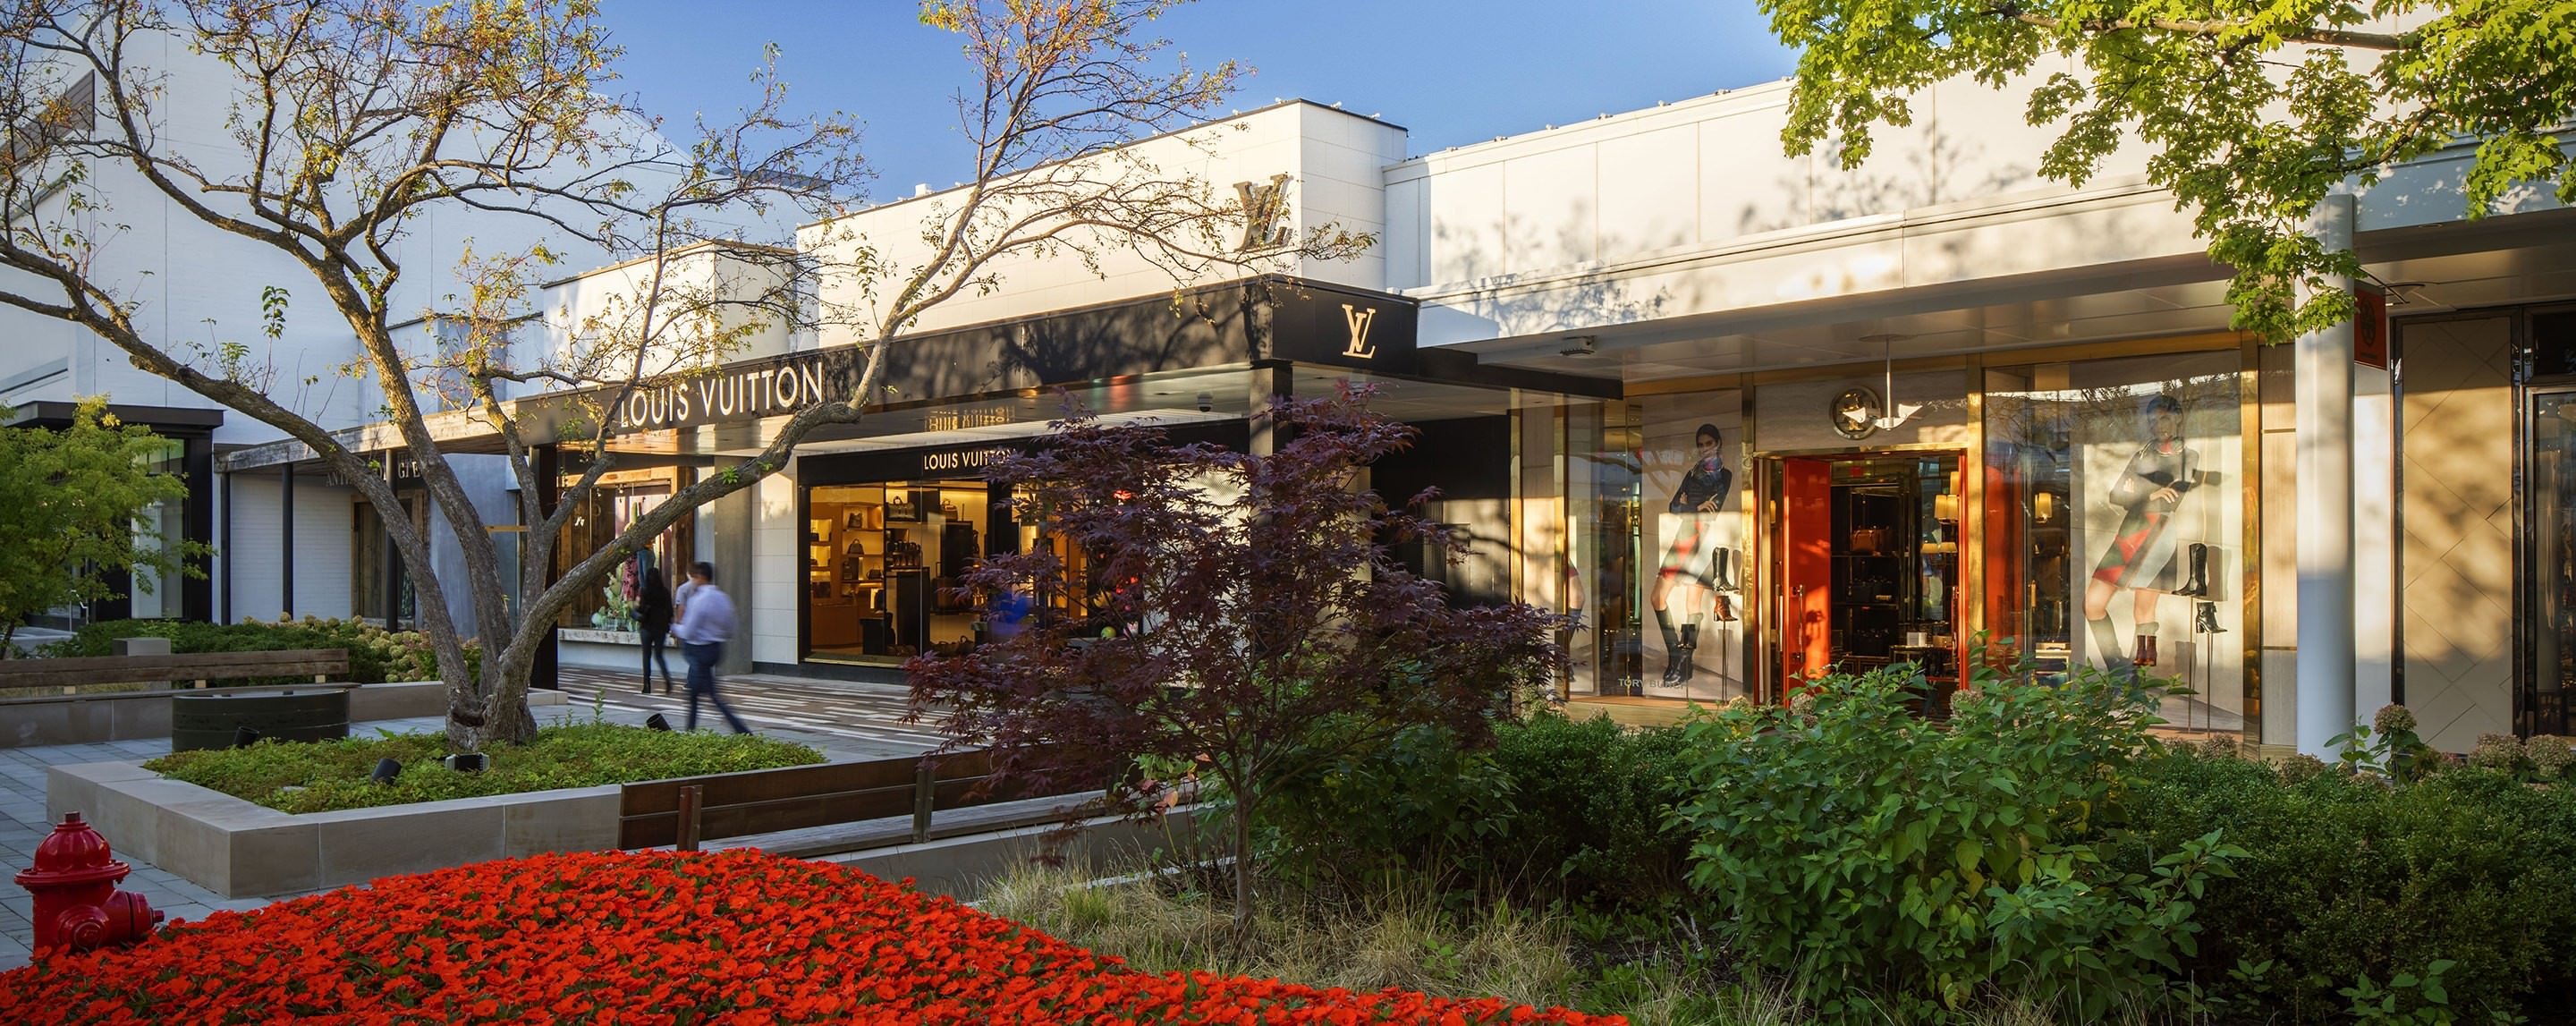 A building that says Louis Vuitton with trees and red flowers in front.